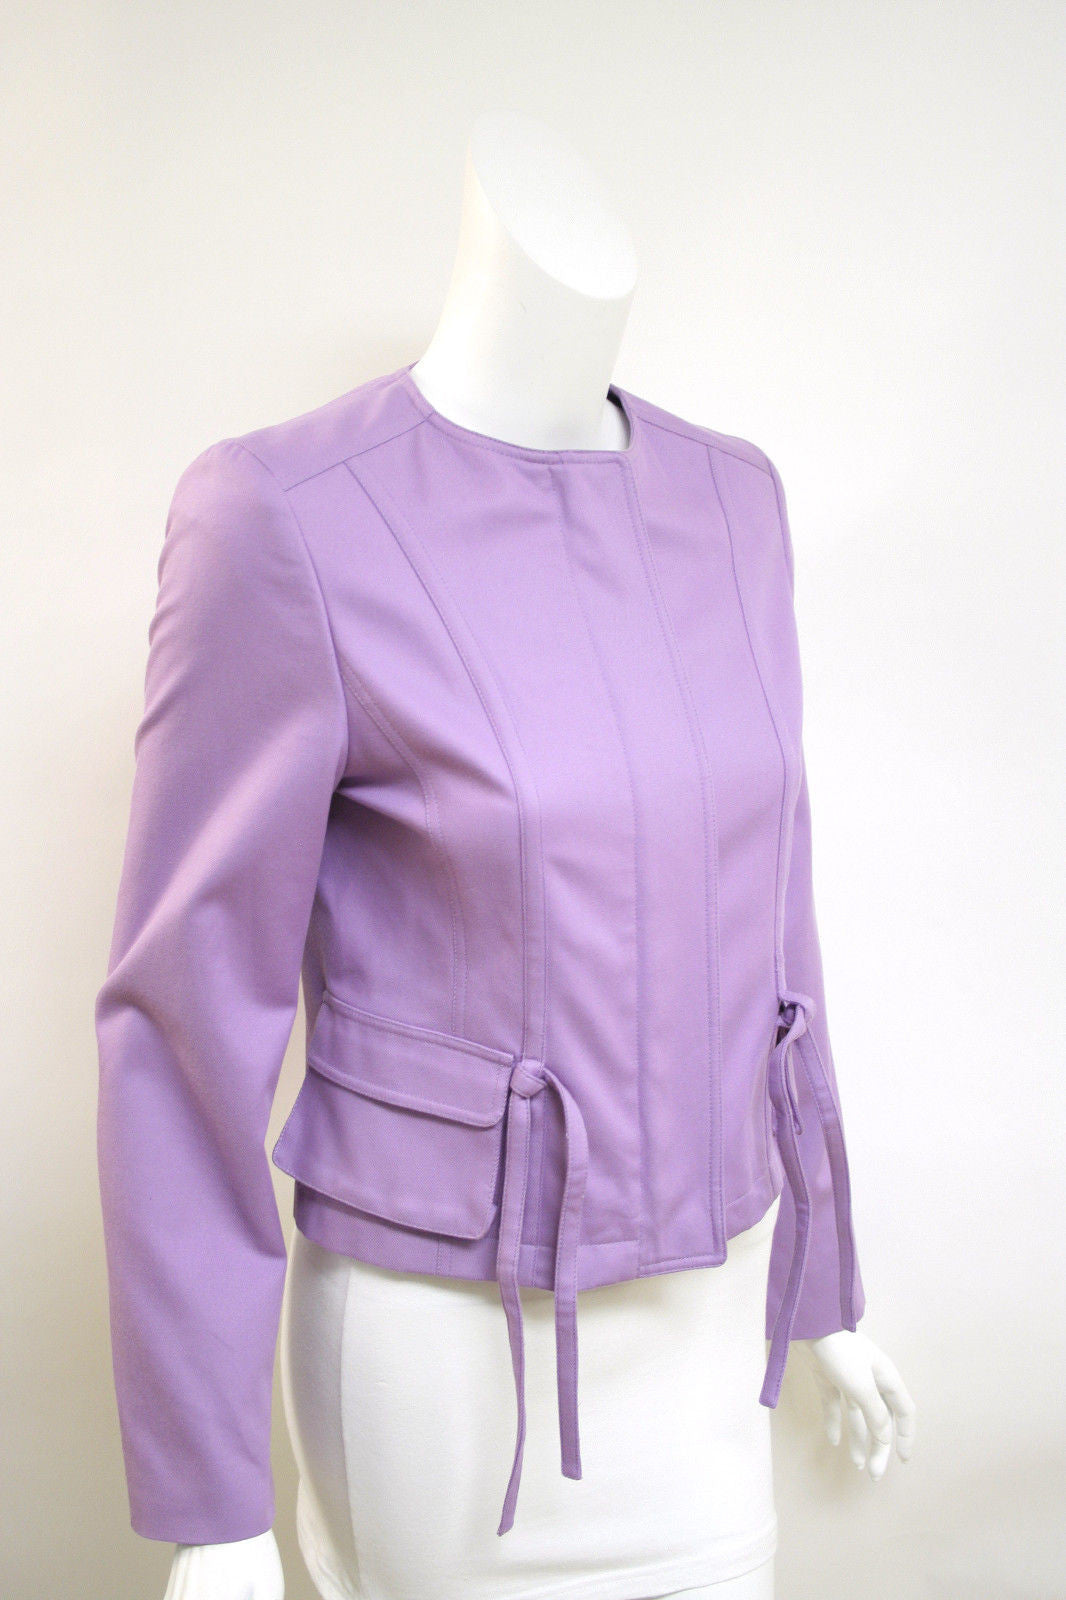 bisbiz.com BURBERRY  Lavender Cotton Blend Collarless Zip Front Jacket  Size: UK 10 / US 8 - Bis Luxury Resale